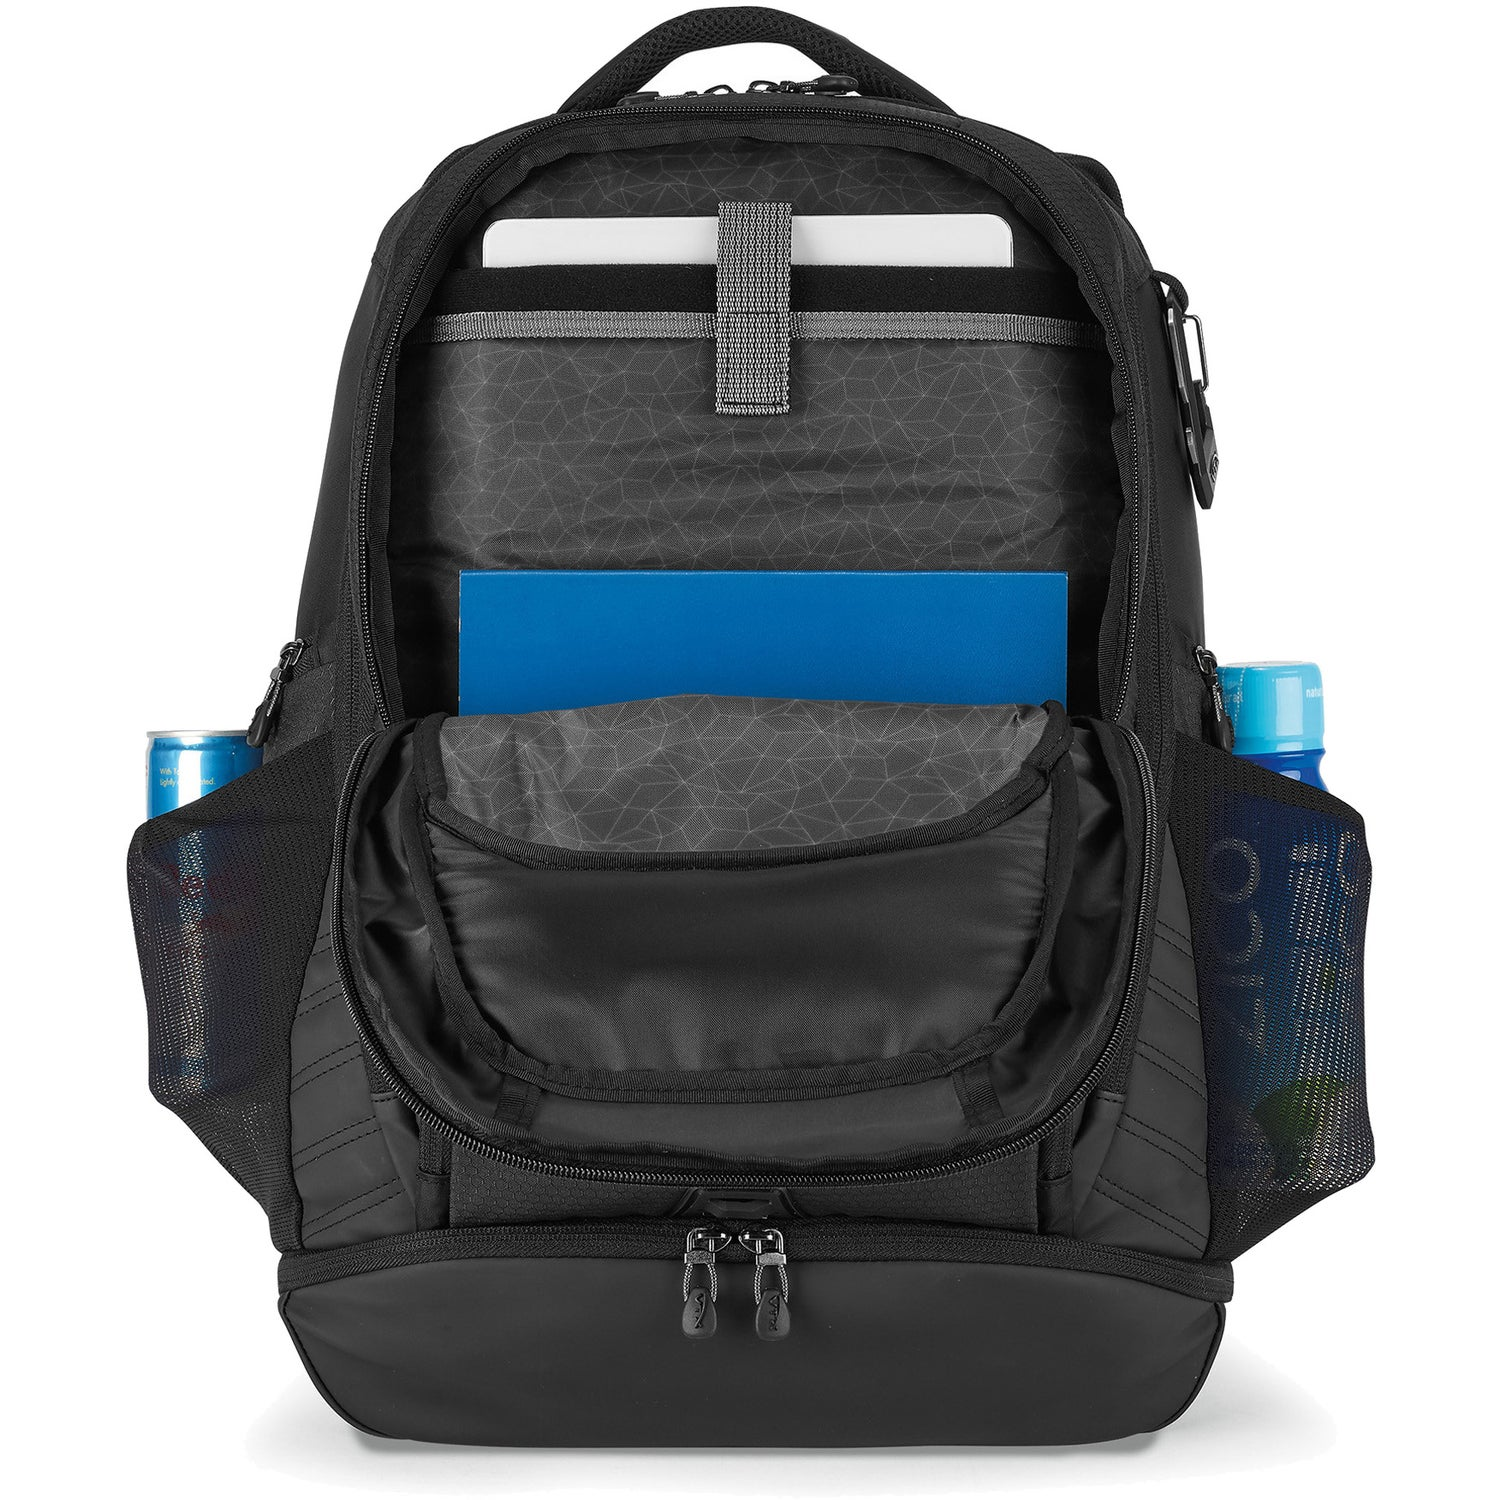 7c8a40076b75 Promotional Vertex Viper Computer Backpacks with Custom Logo for  54.55 Ea.